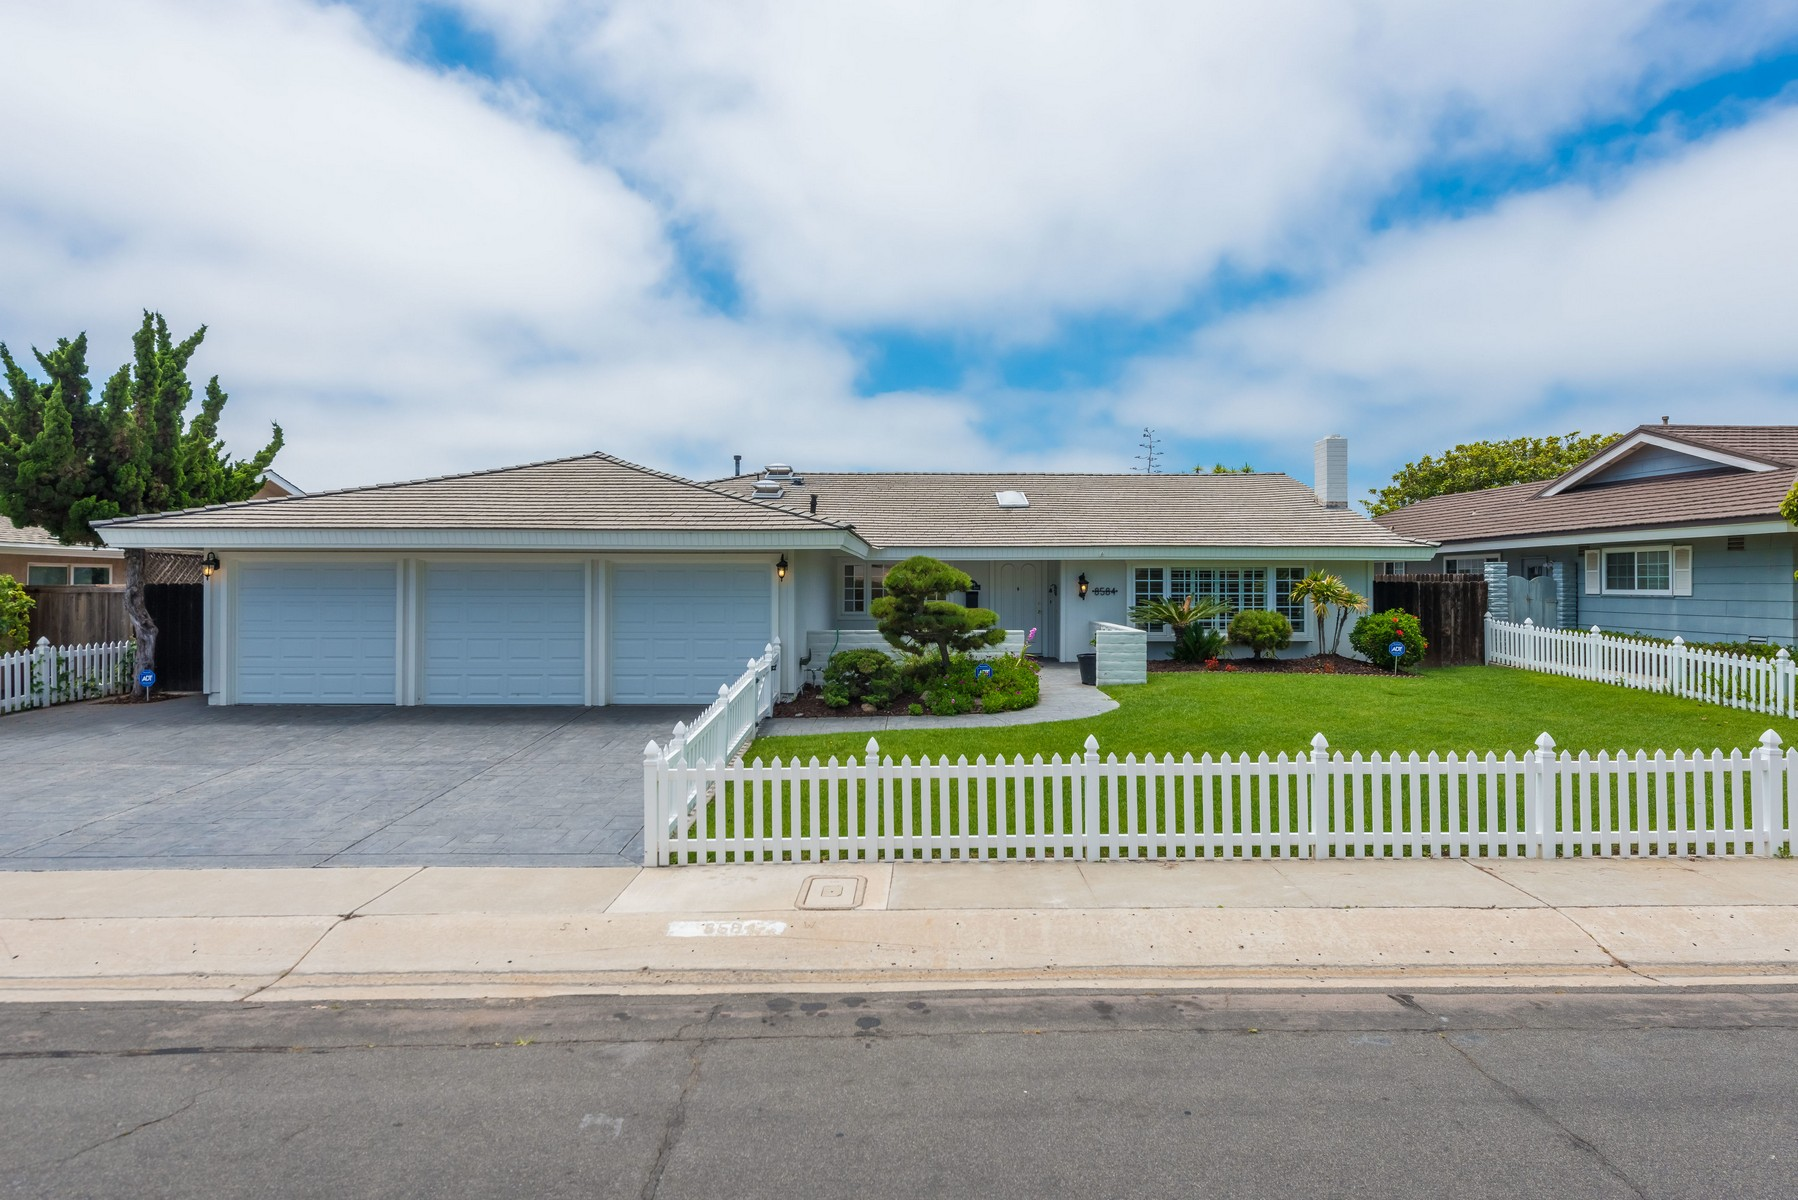 Single Family Home for Rent at 8584 Cliffridge Ave La Jolla, California 92037 United States